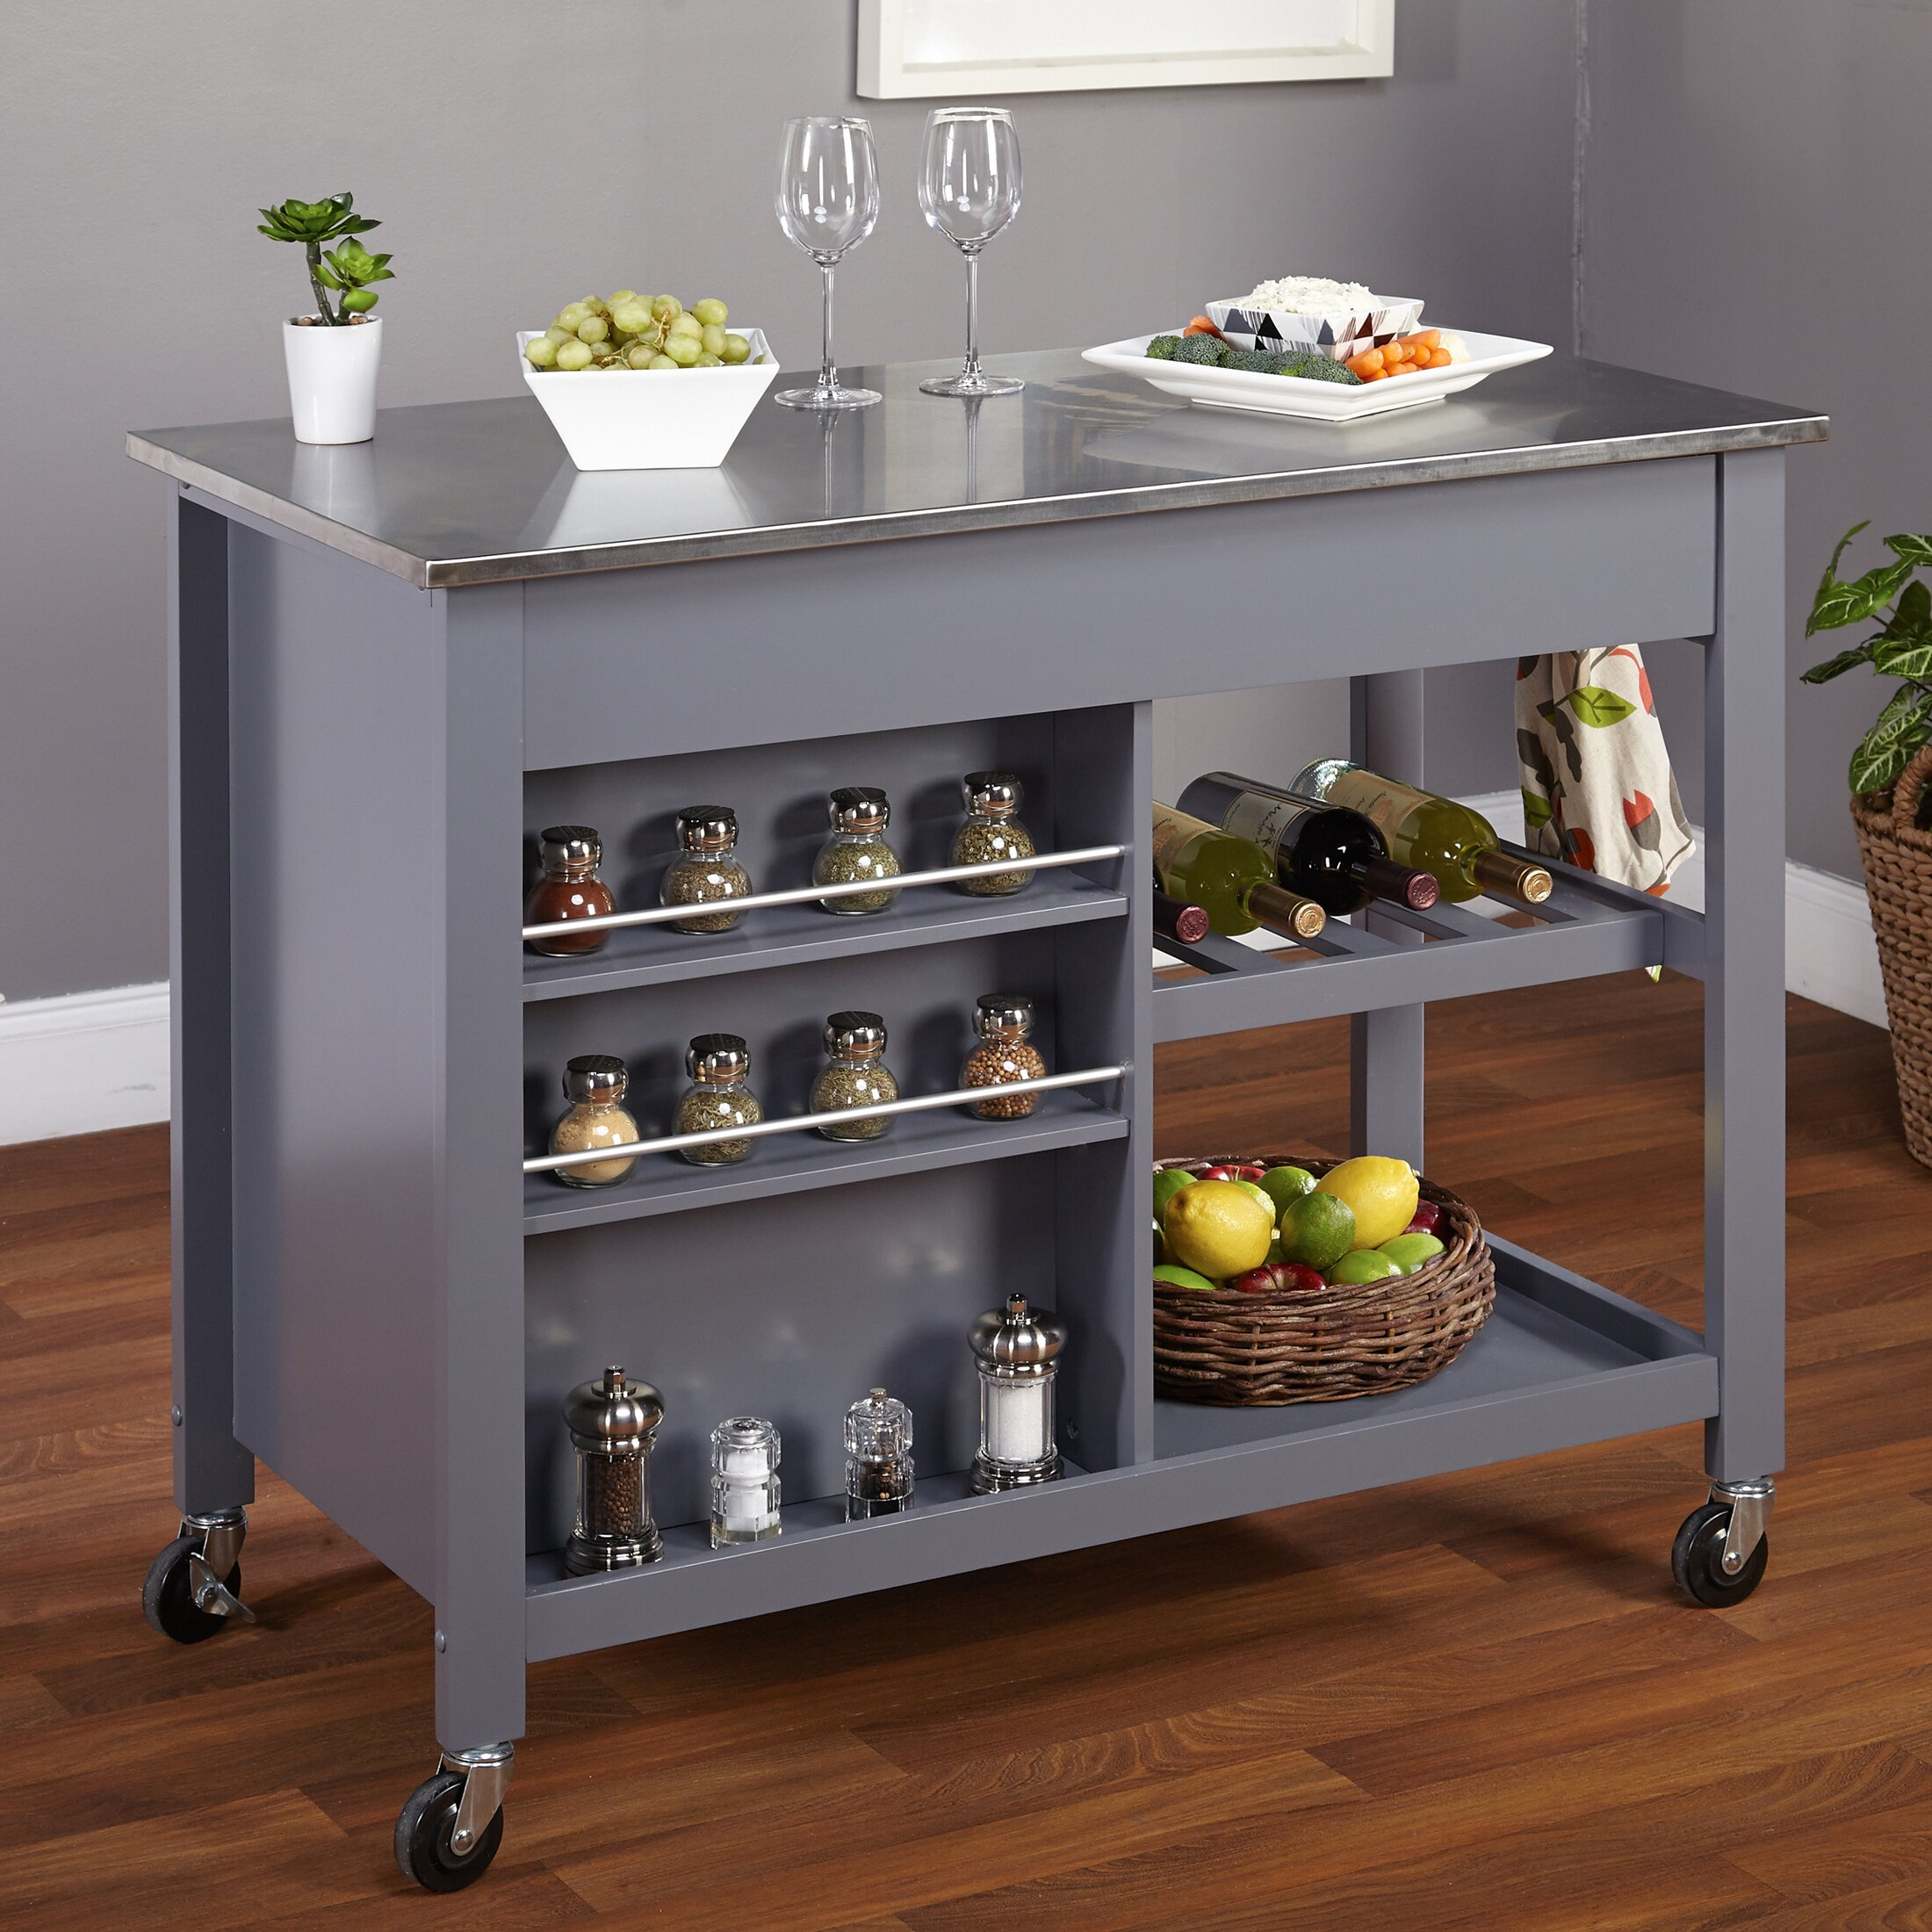 kitchen island stainless steel top tms columbus kitchen island with stainless steel top 24786